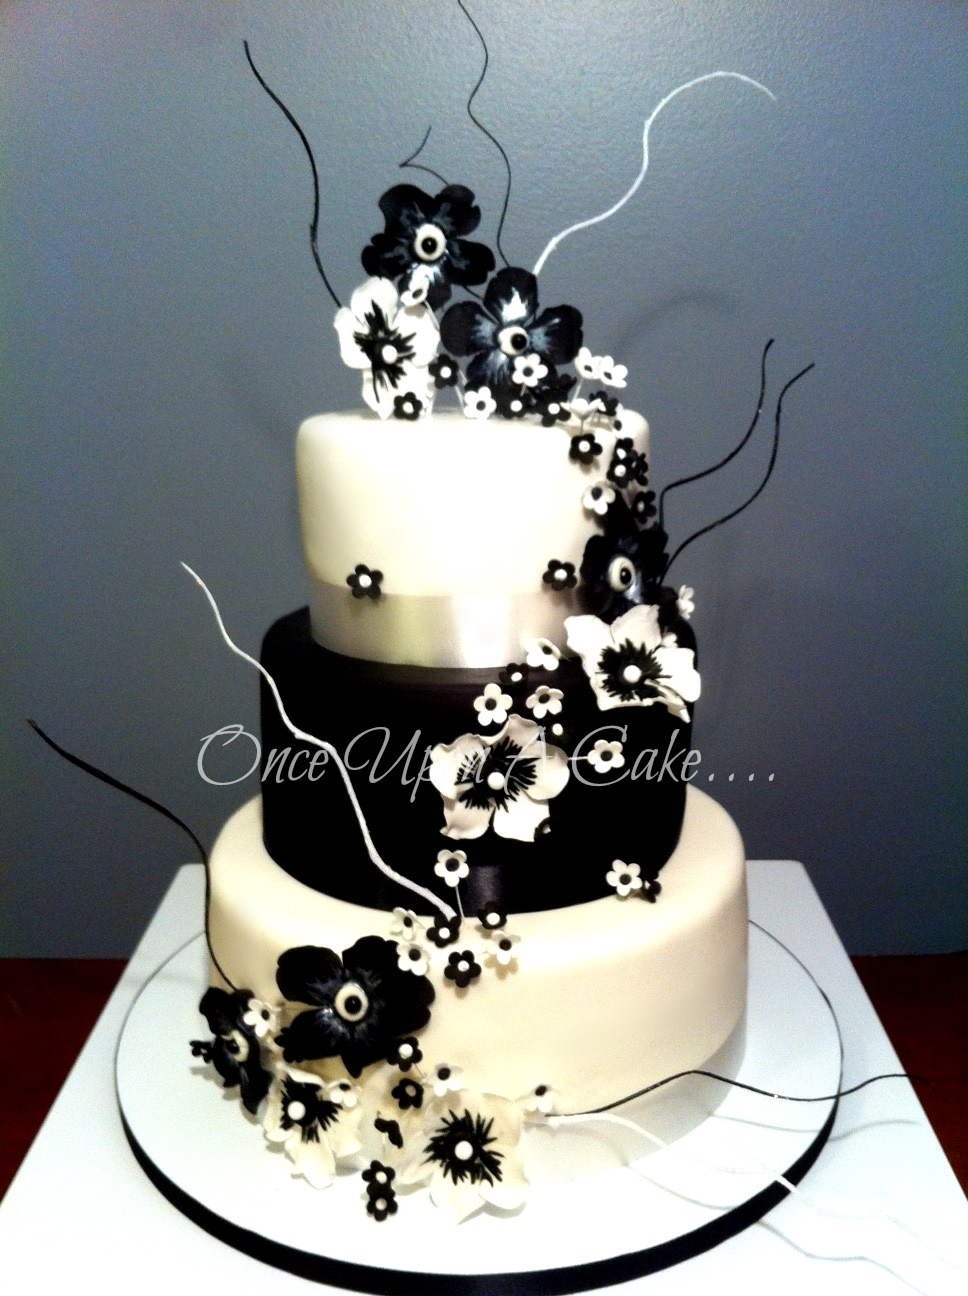 wedding cake delivery charges once upon a cake hotmail 780940 9744 leduc alberta 22428